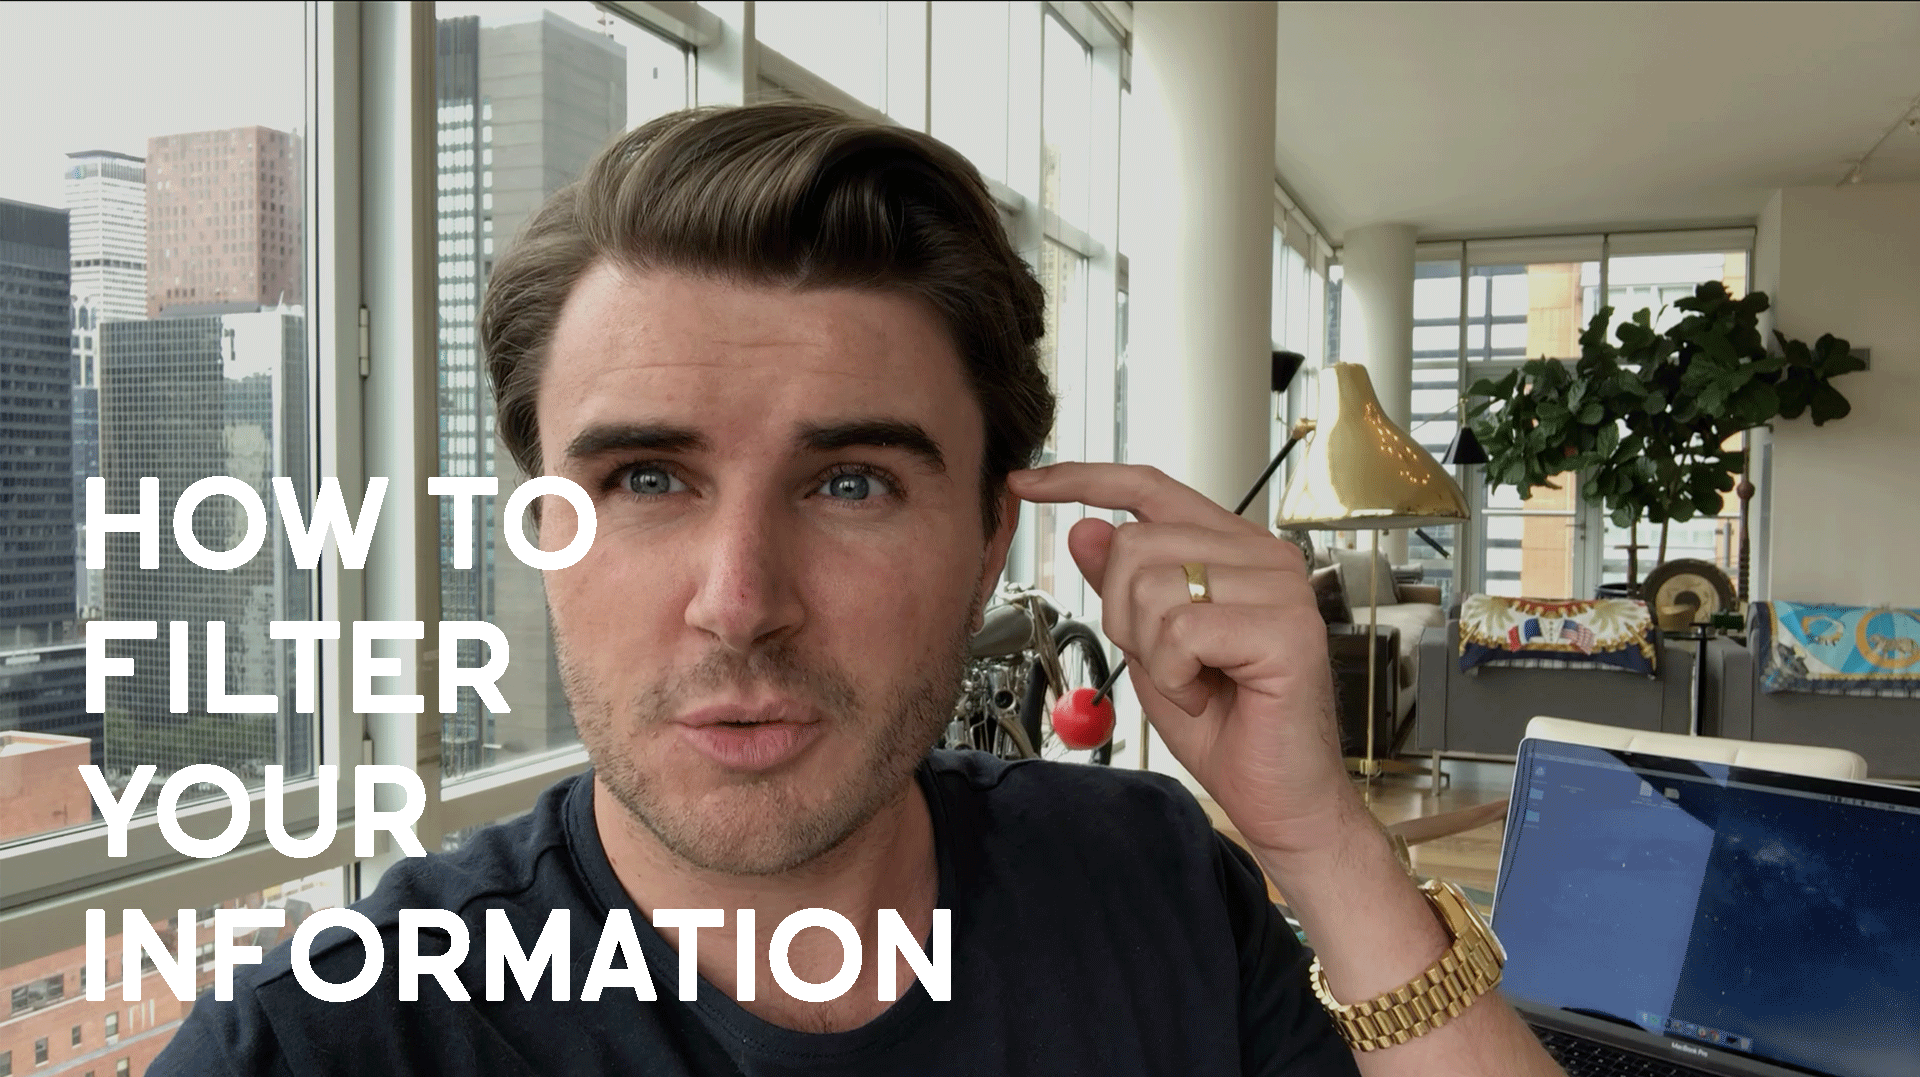 How To Filter Your Information: Everybody's Wrong Until Proven Right